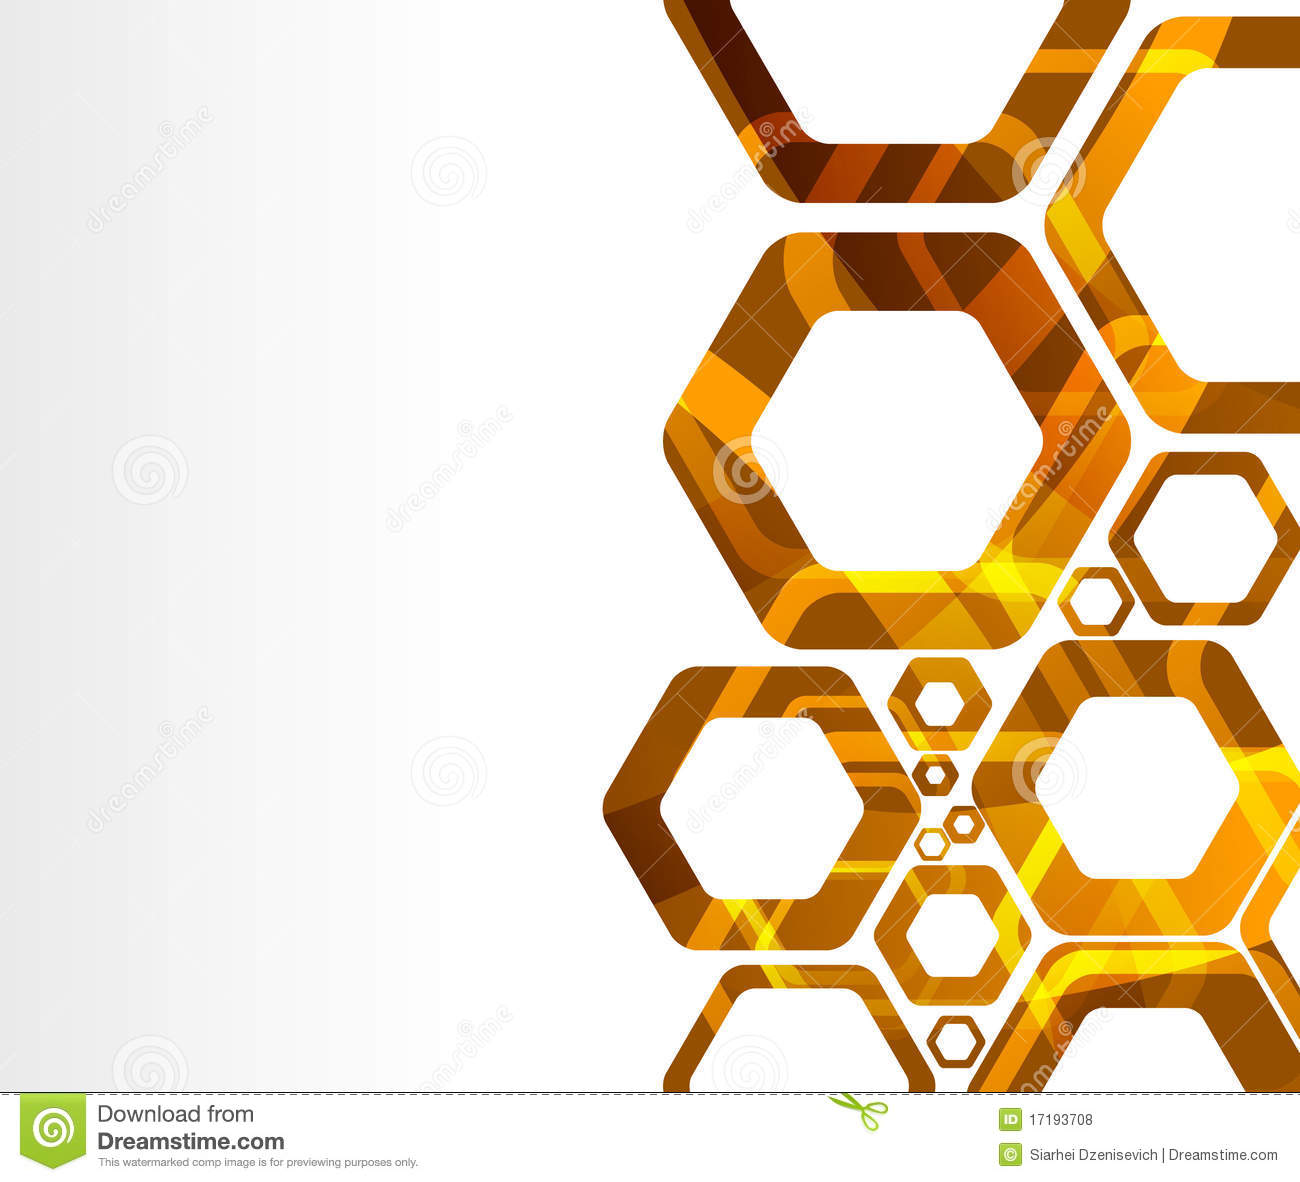 Geometry Background In Warm Colors Royalty Free Stock Photos.